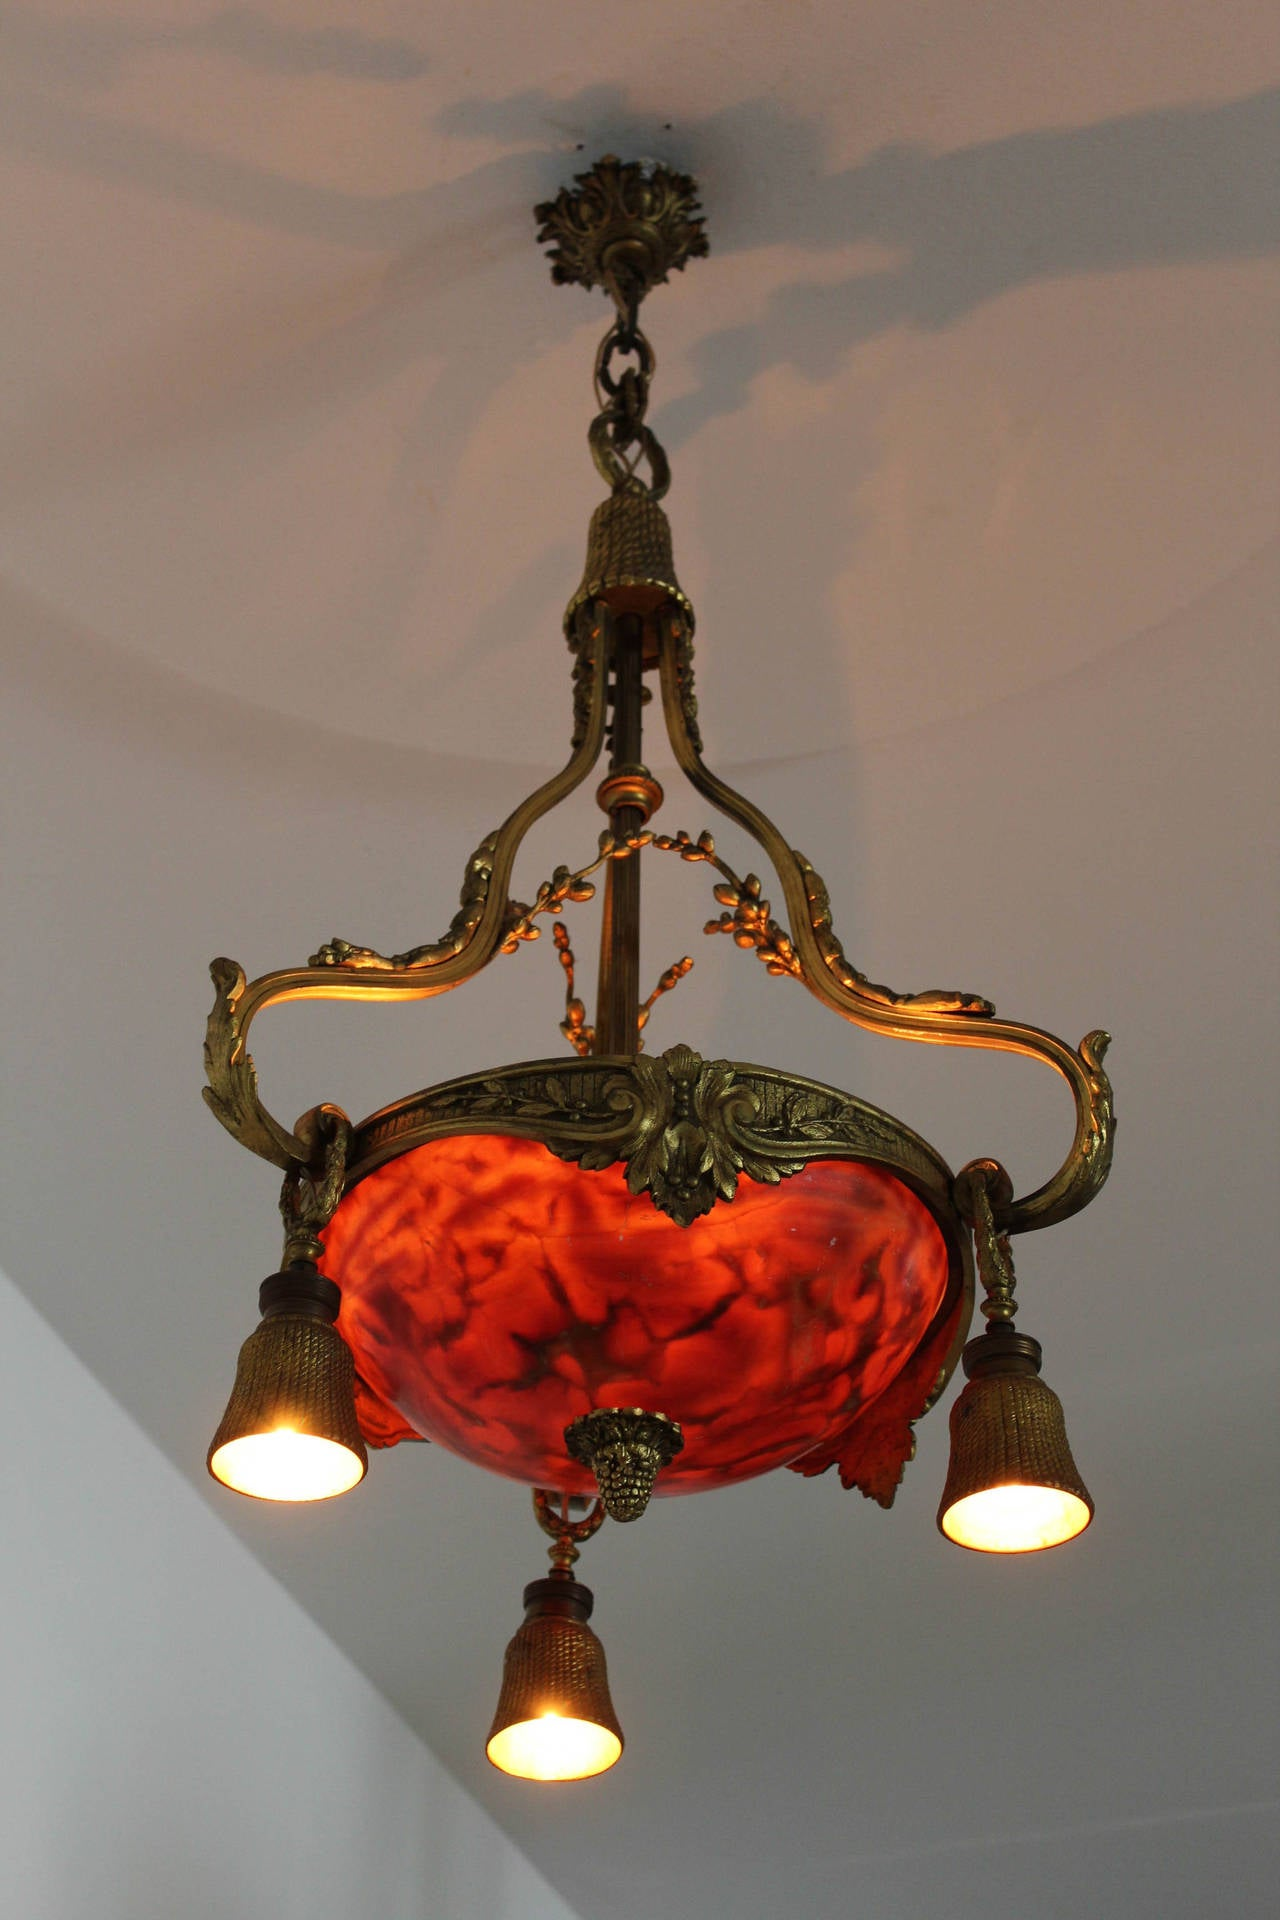 Stunning French Gilt Bronze And Alabaster Chandelier For Sale at